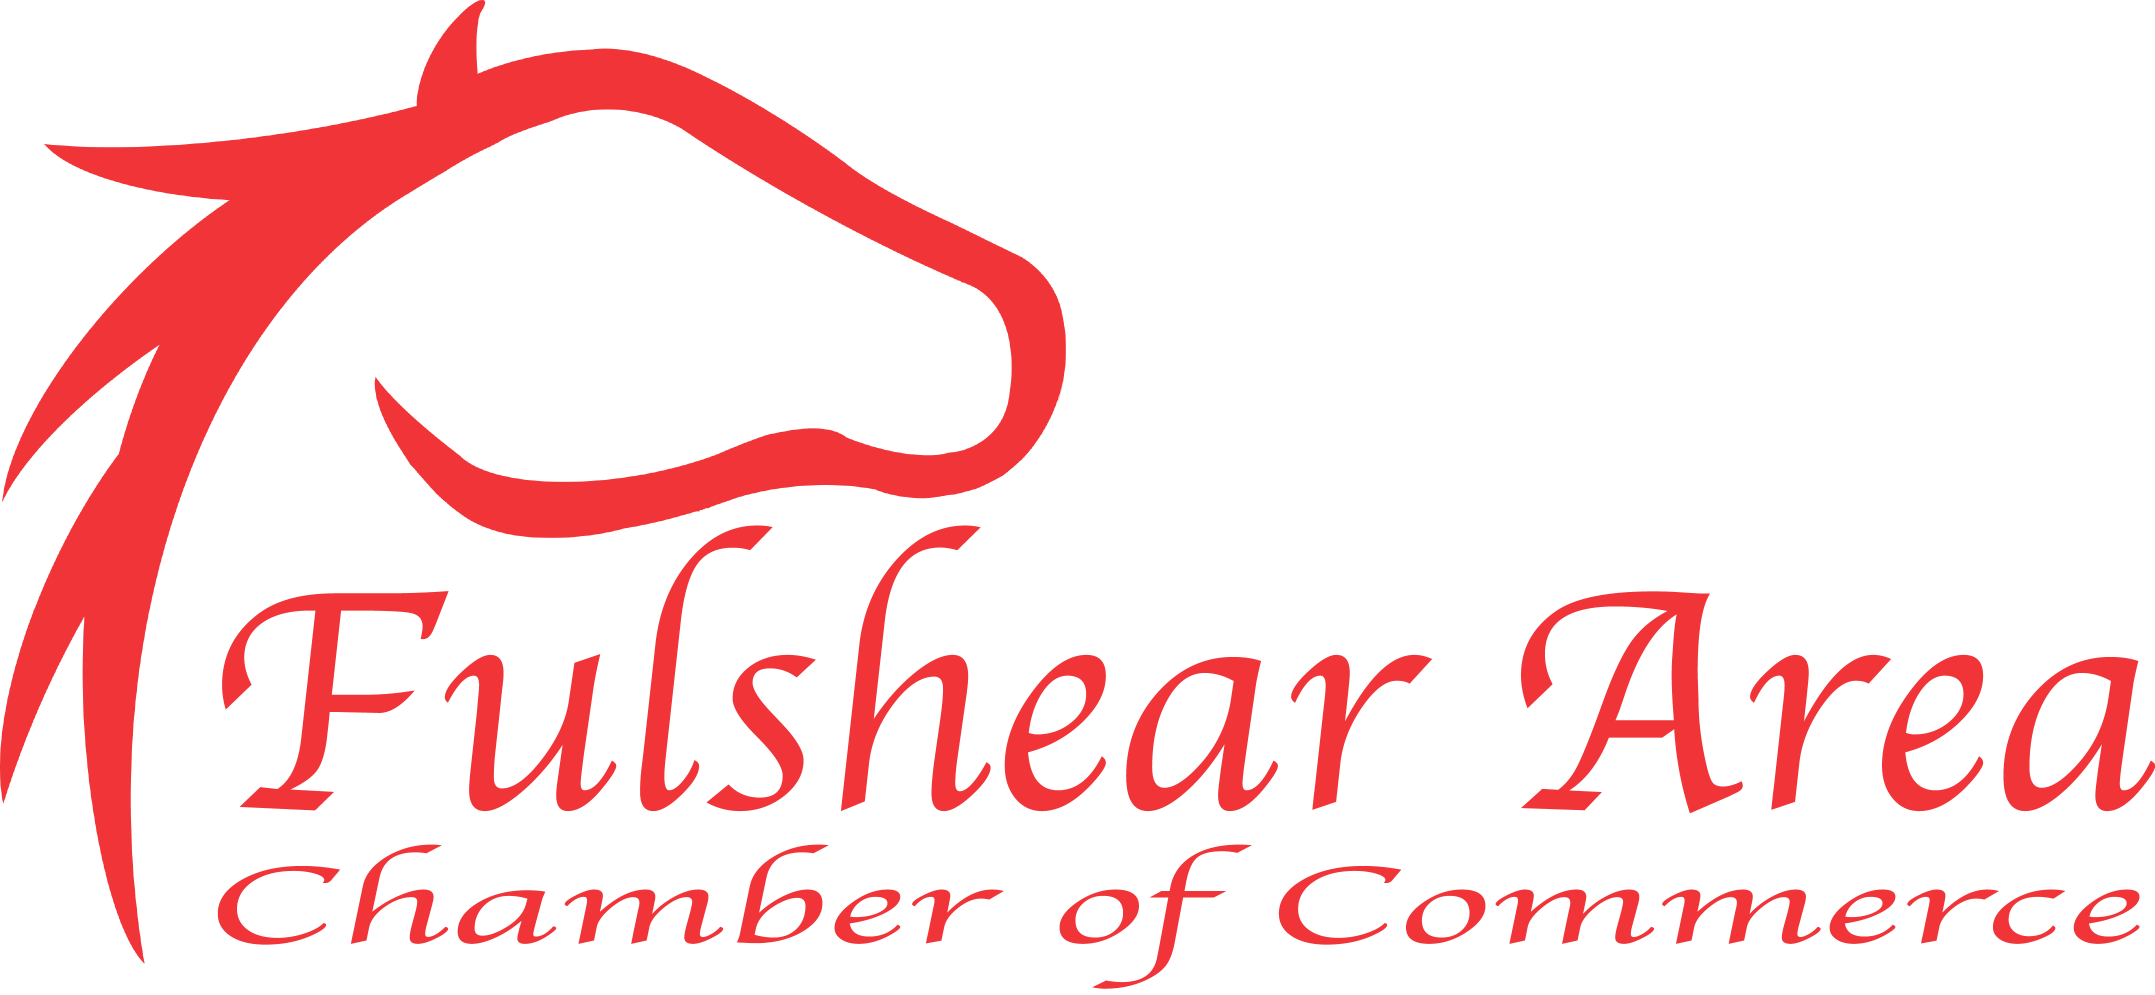 Fulshear Area Chamber of Commerce Logo